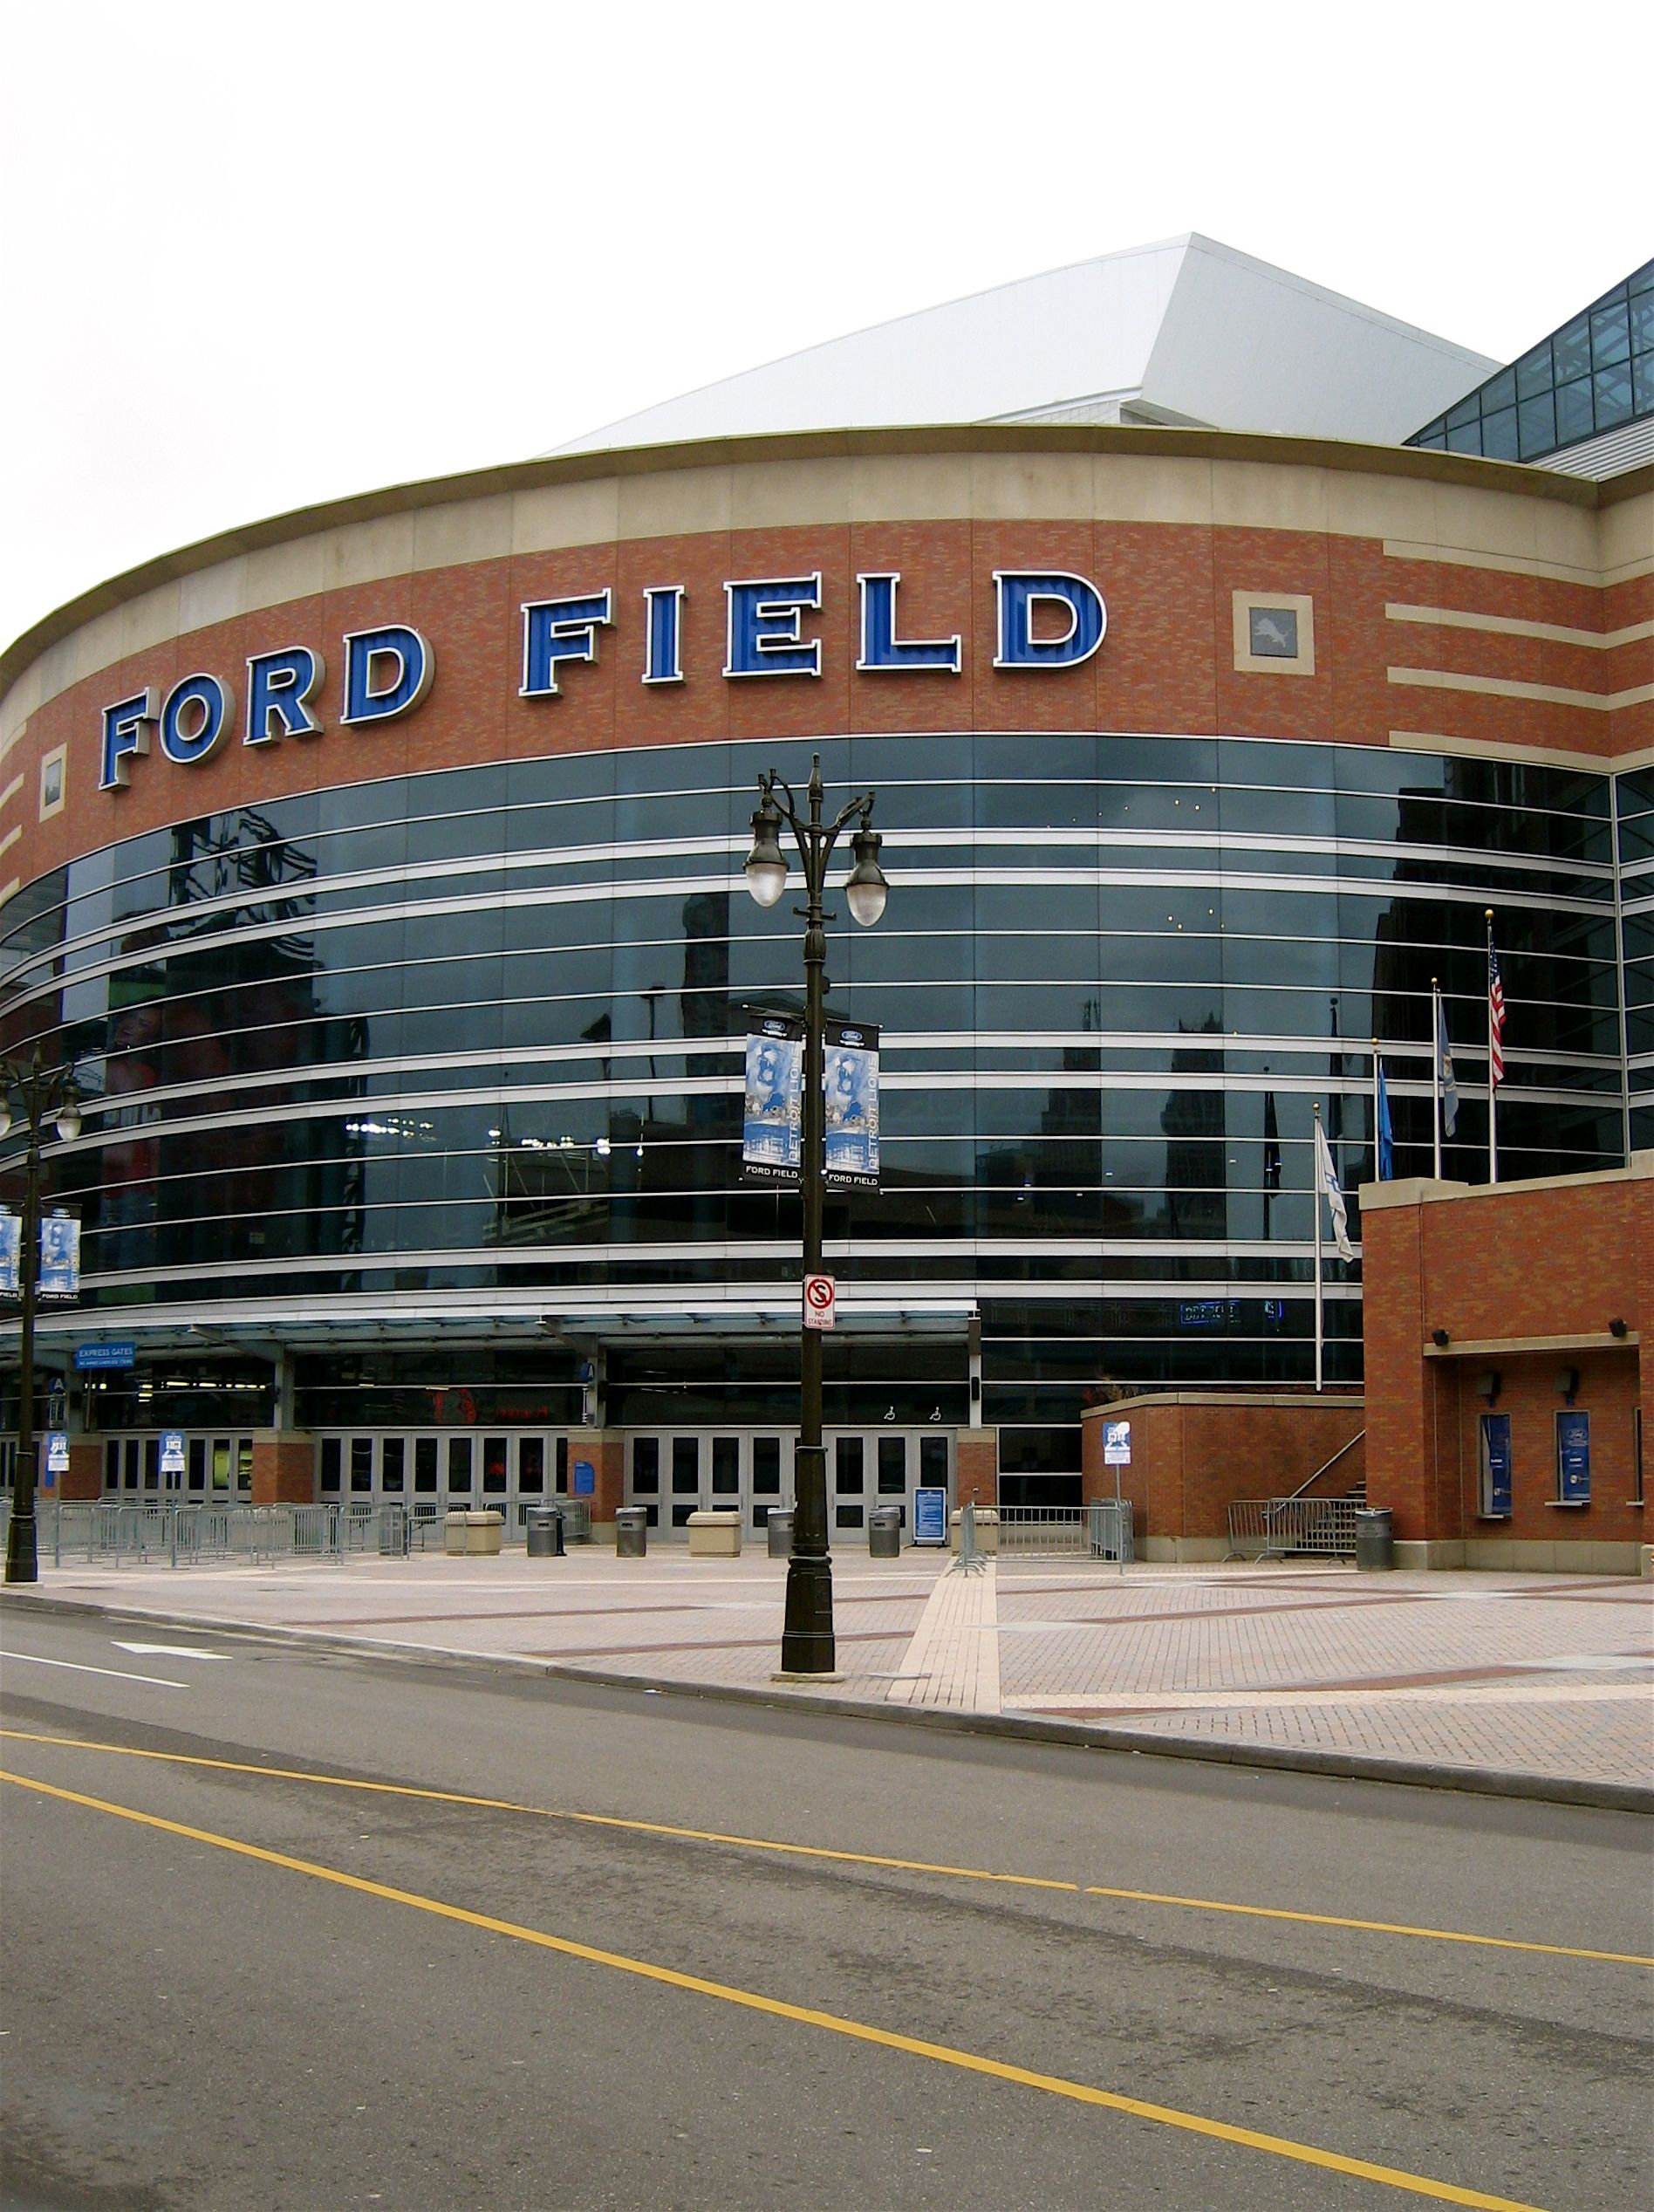 Ford Field Pictures File Jpg Wikipedia The Free Encyclopedia